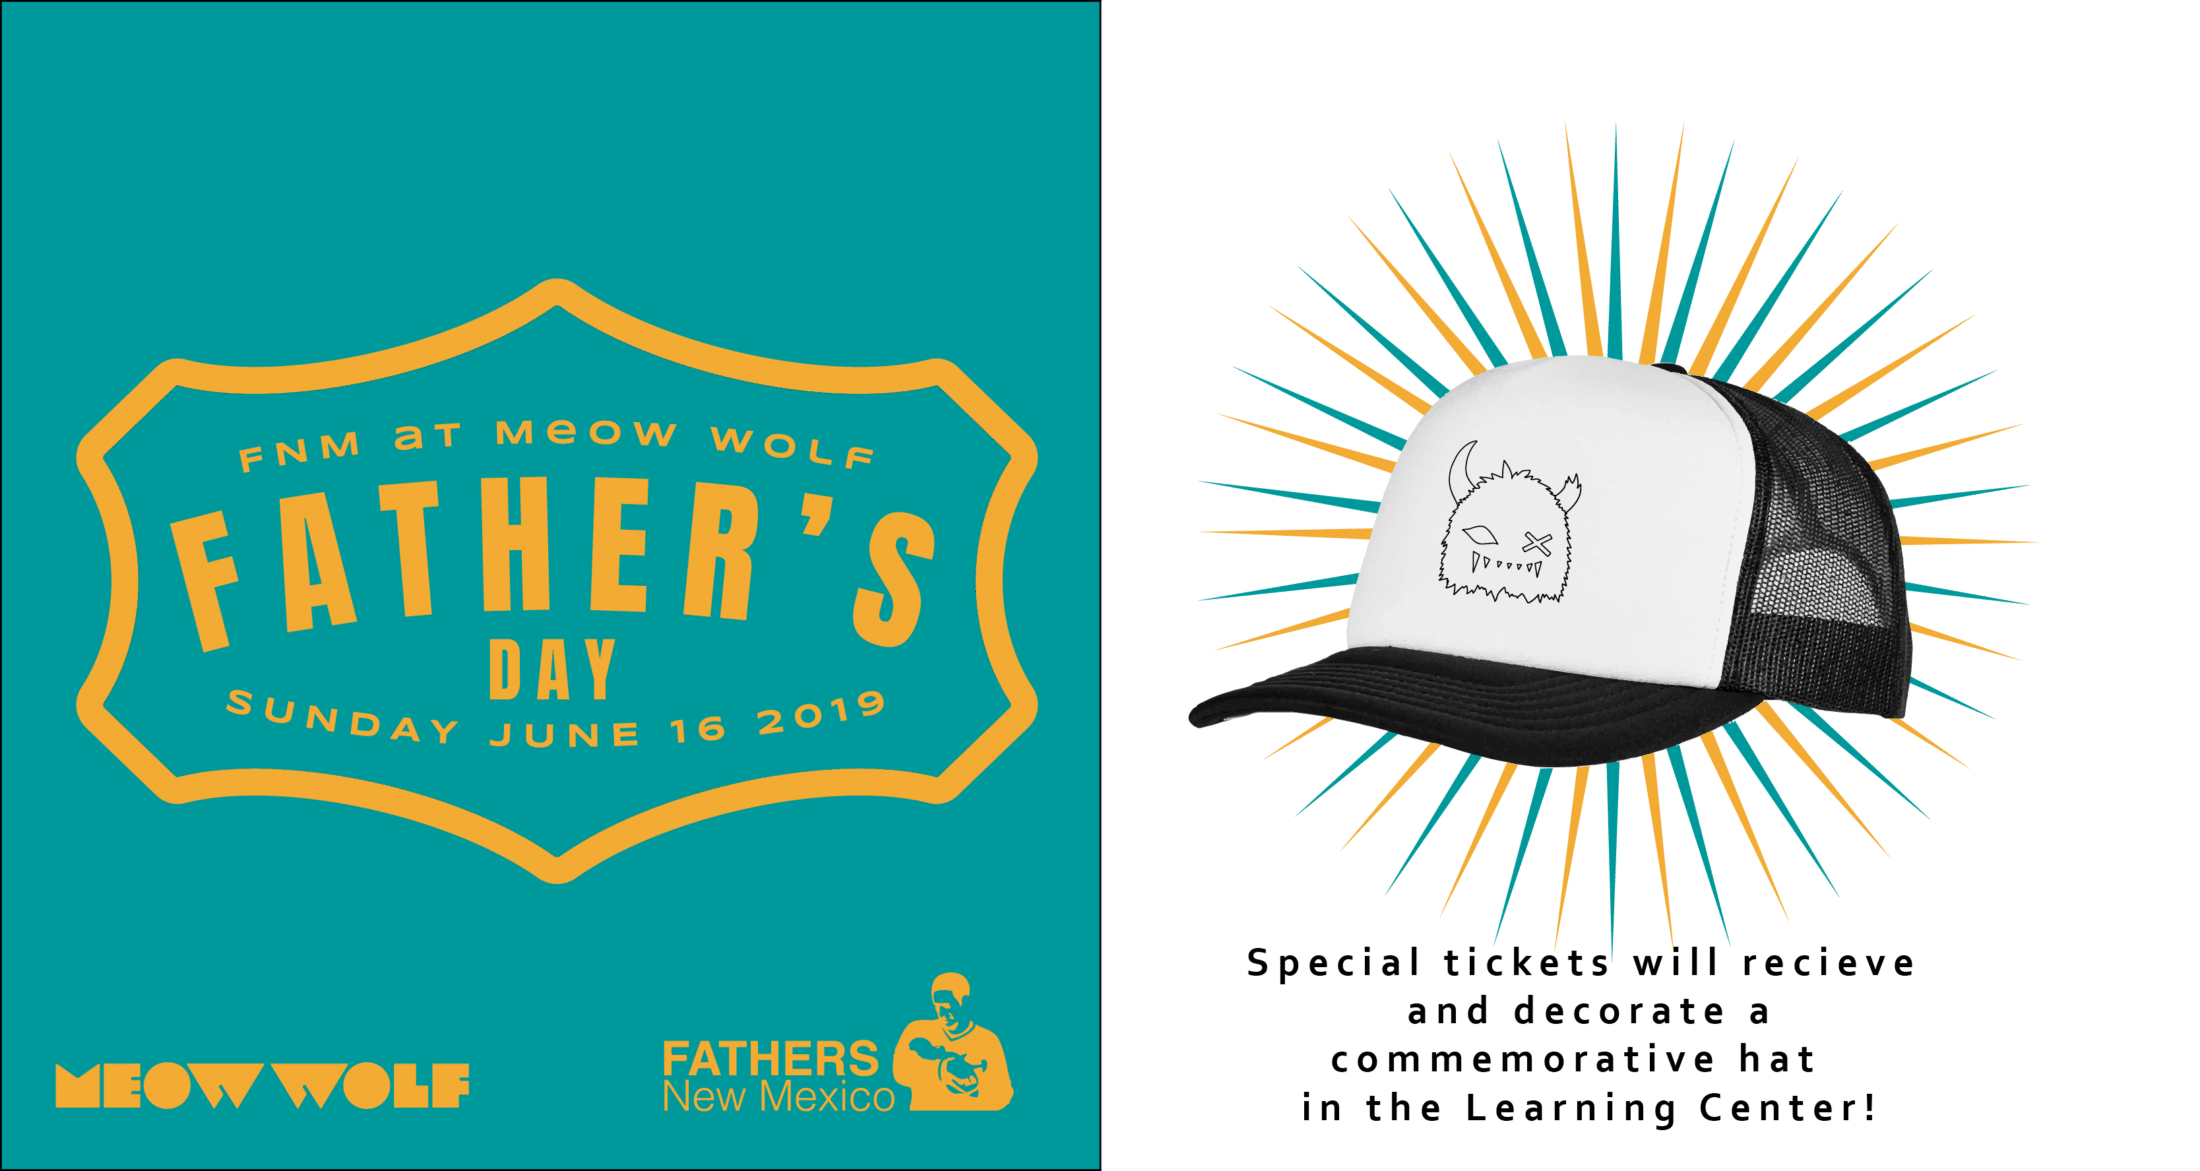 Fundraiser Snaggy Hat Workshop - Father's New Mexico at Meow Wolf 2019